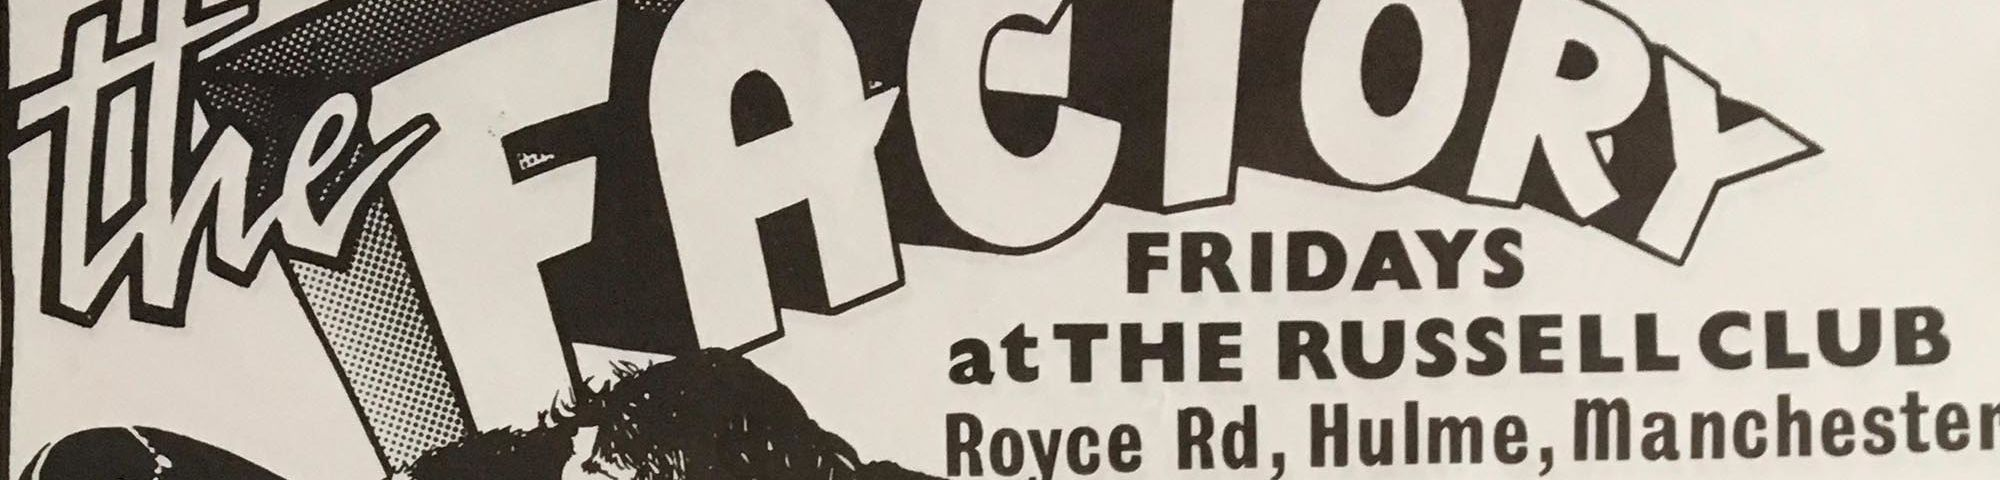 Detail of poster with black text on a light background. Text reads: The Factory, Fridays at The Russell Club, Royce Rd, Hulme, Manchester. For directions see over.